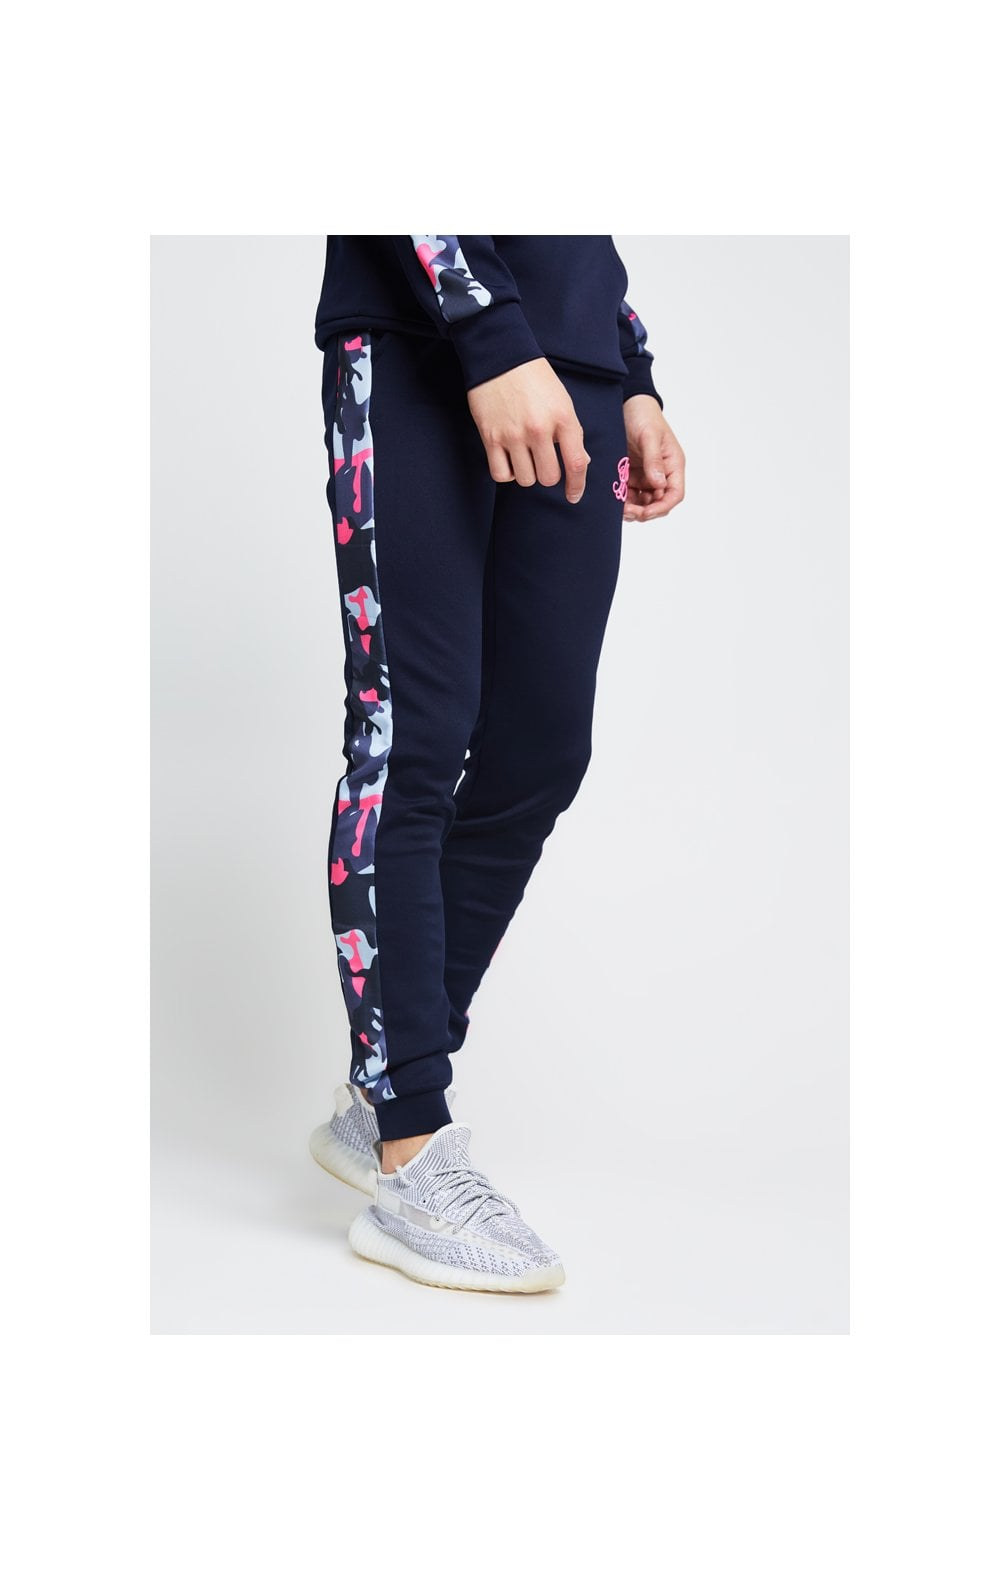 Illusive London Fade Panel Cuffed Joggers – Navy & Neon Pink Camo (2)